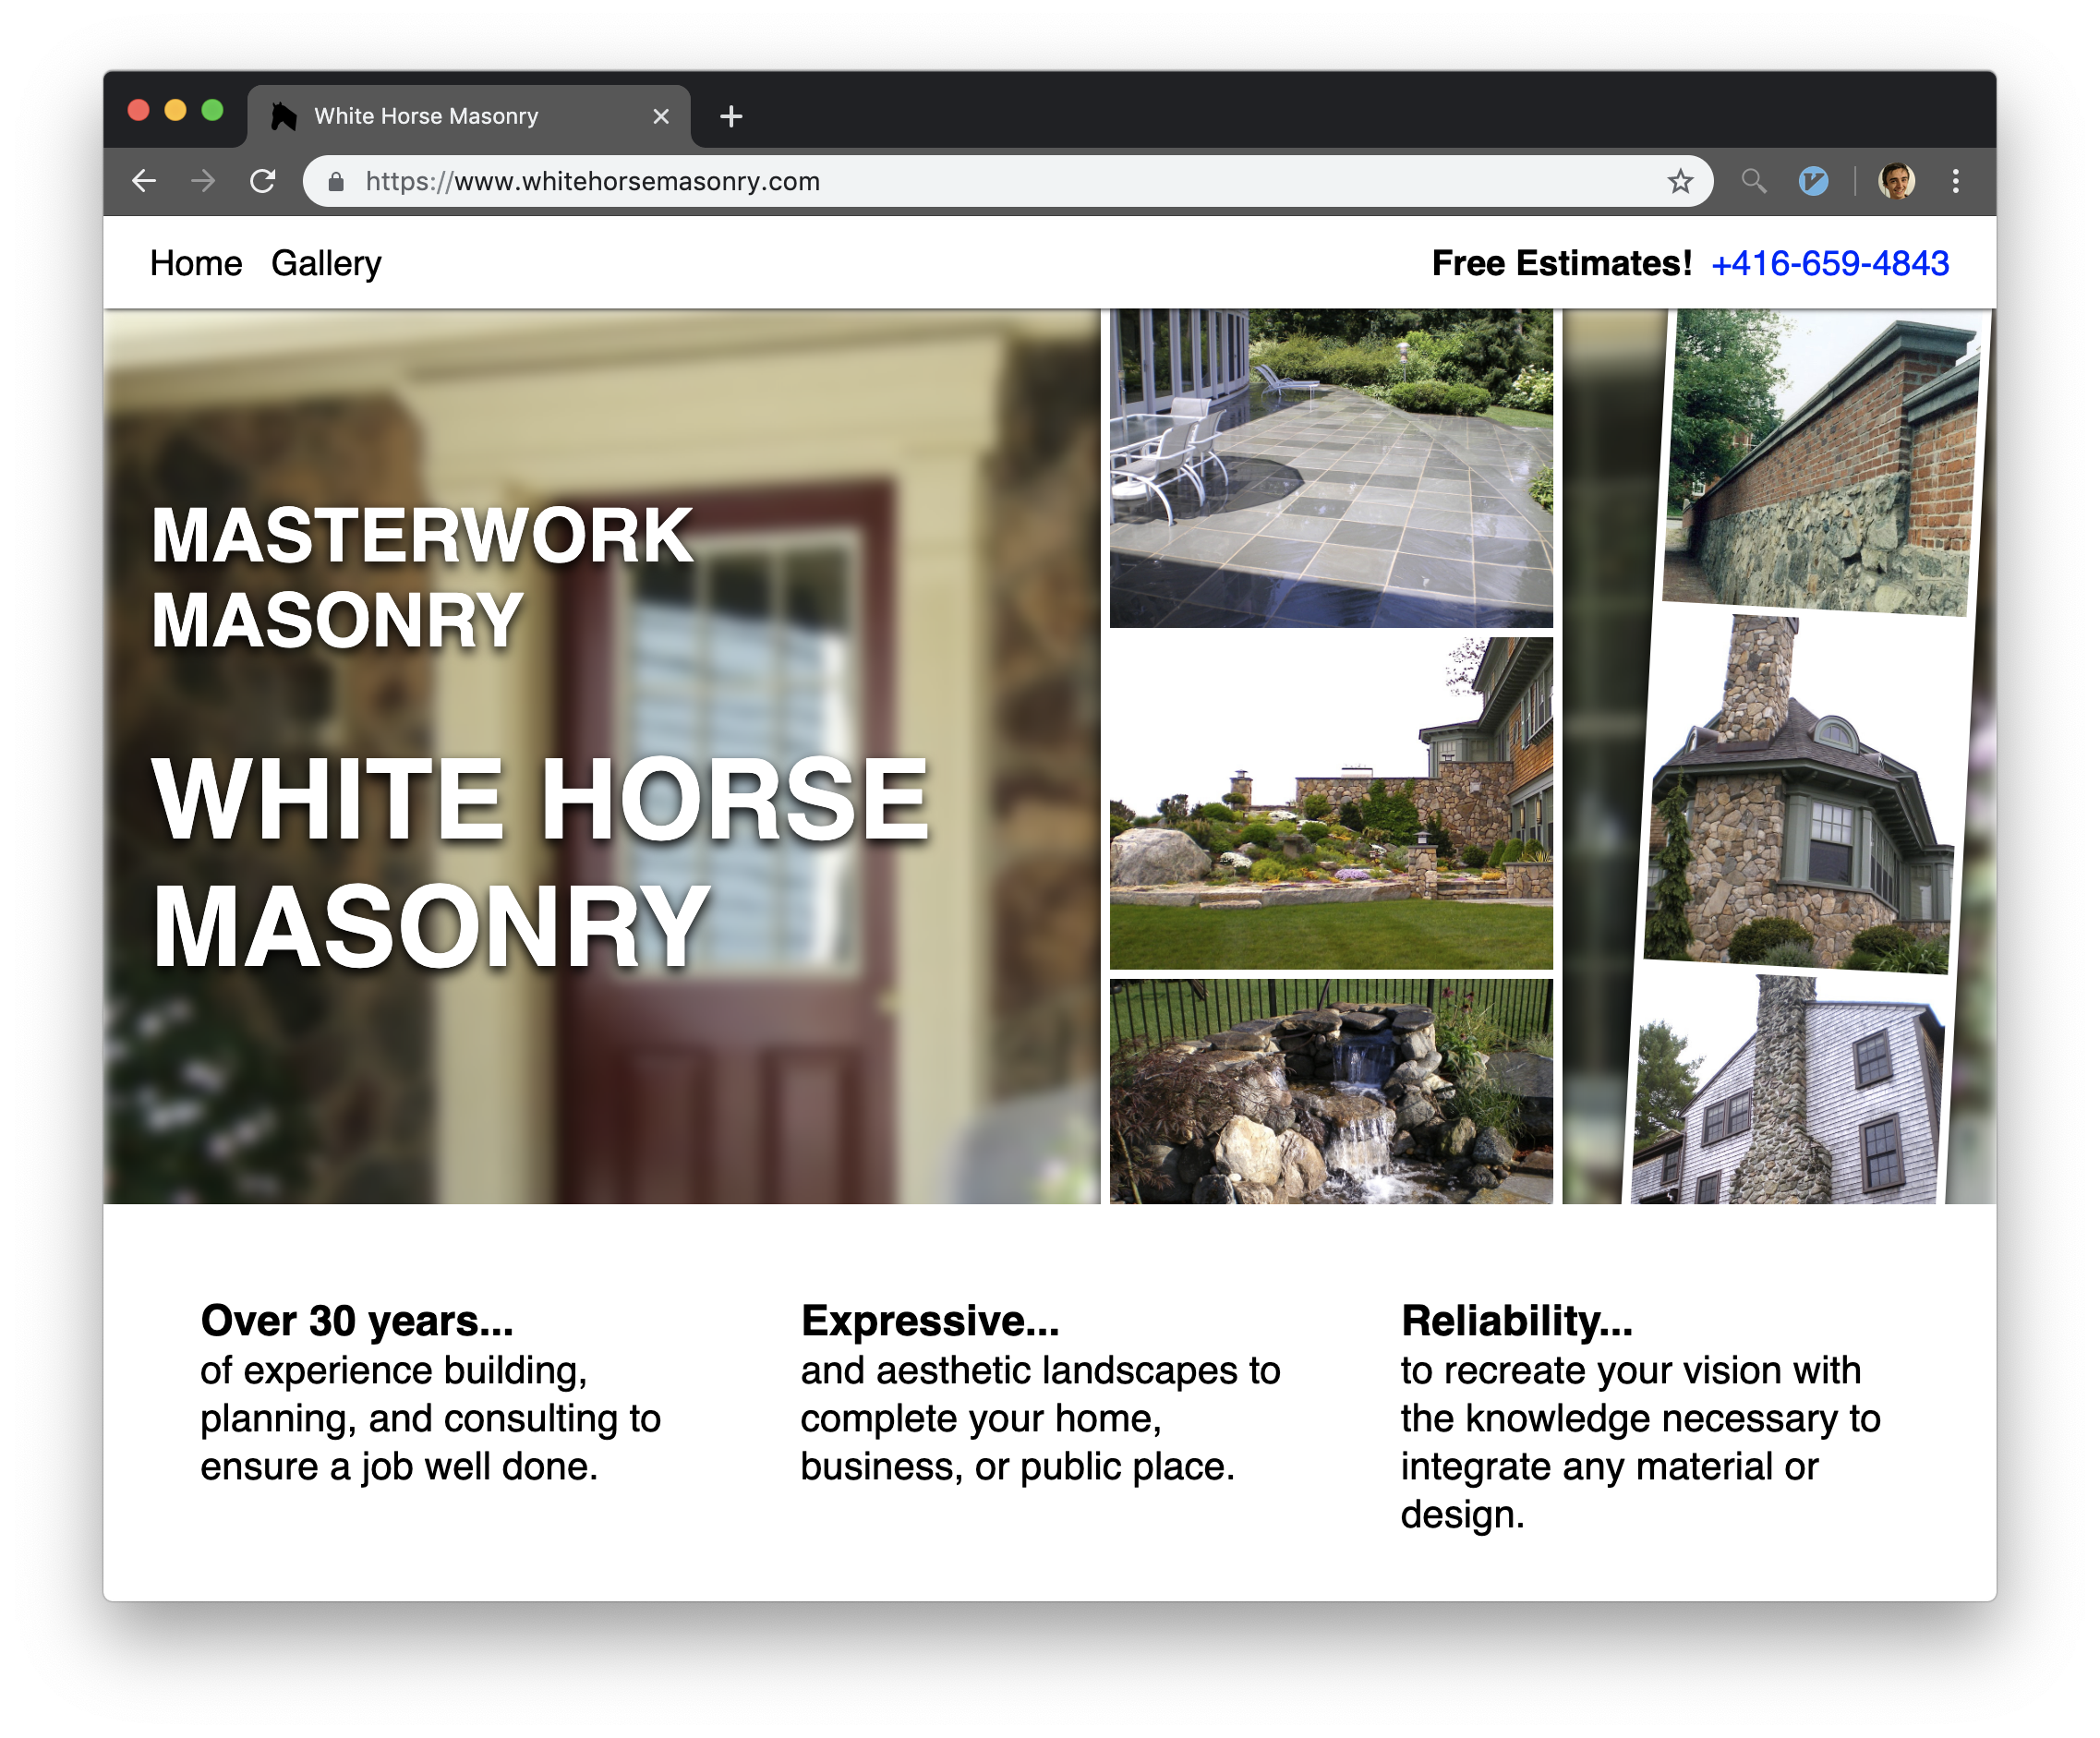 A screen shot of the white horse masonry website home page.